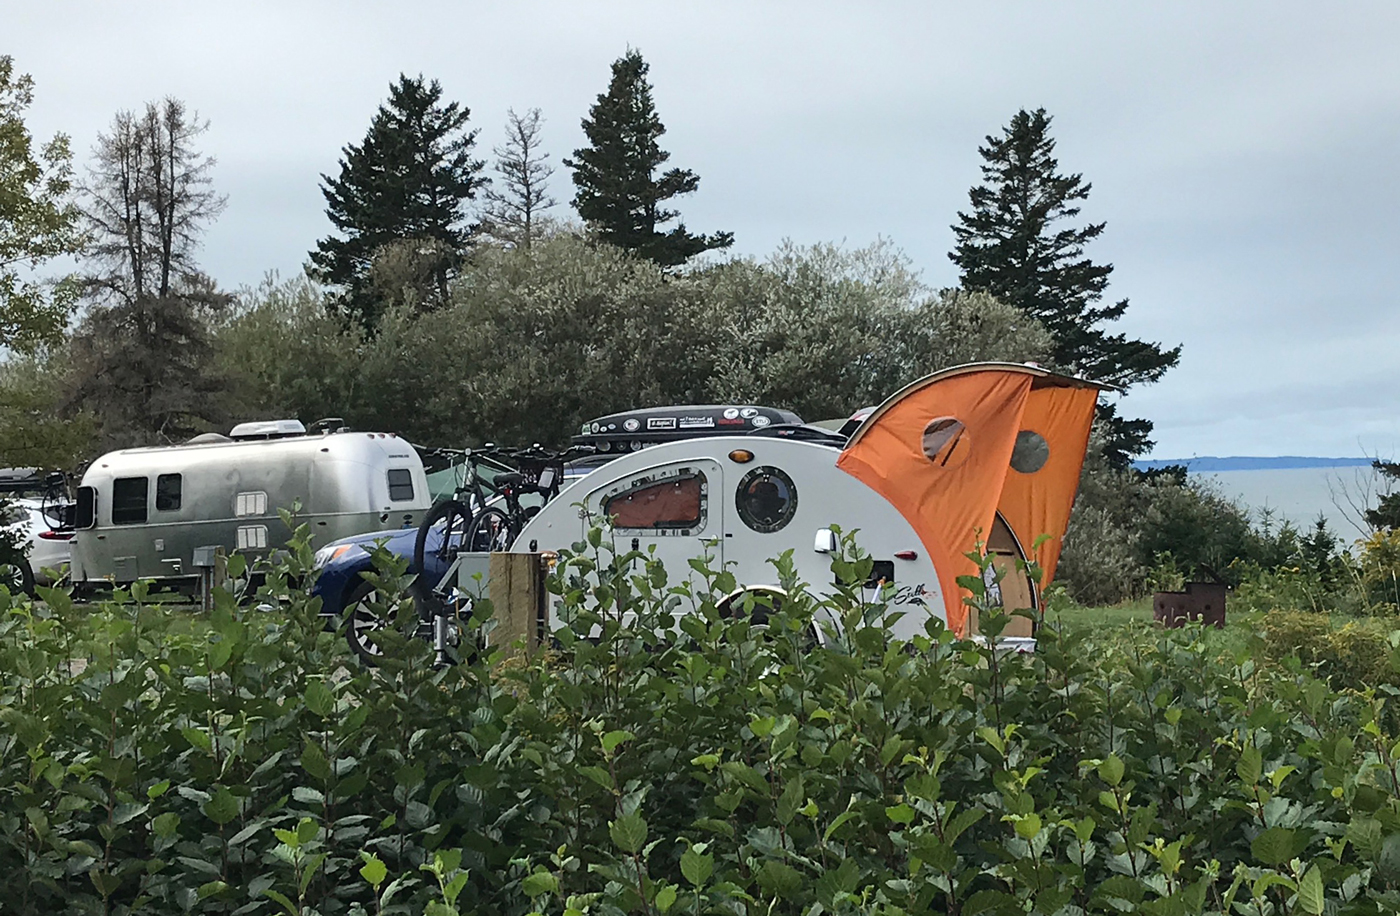 We were next to an Airstream